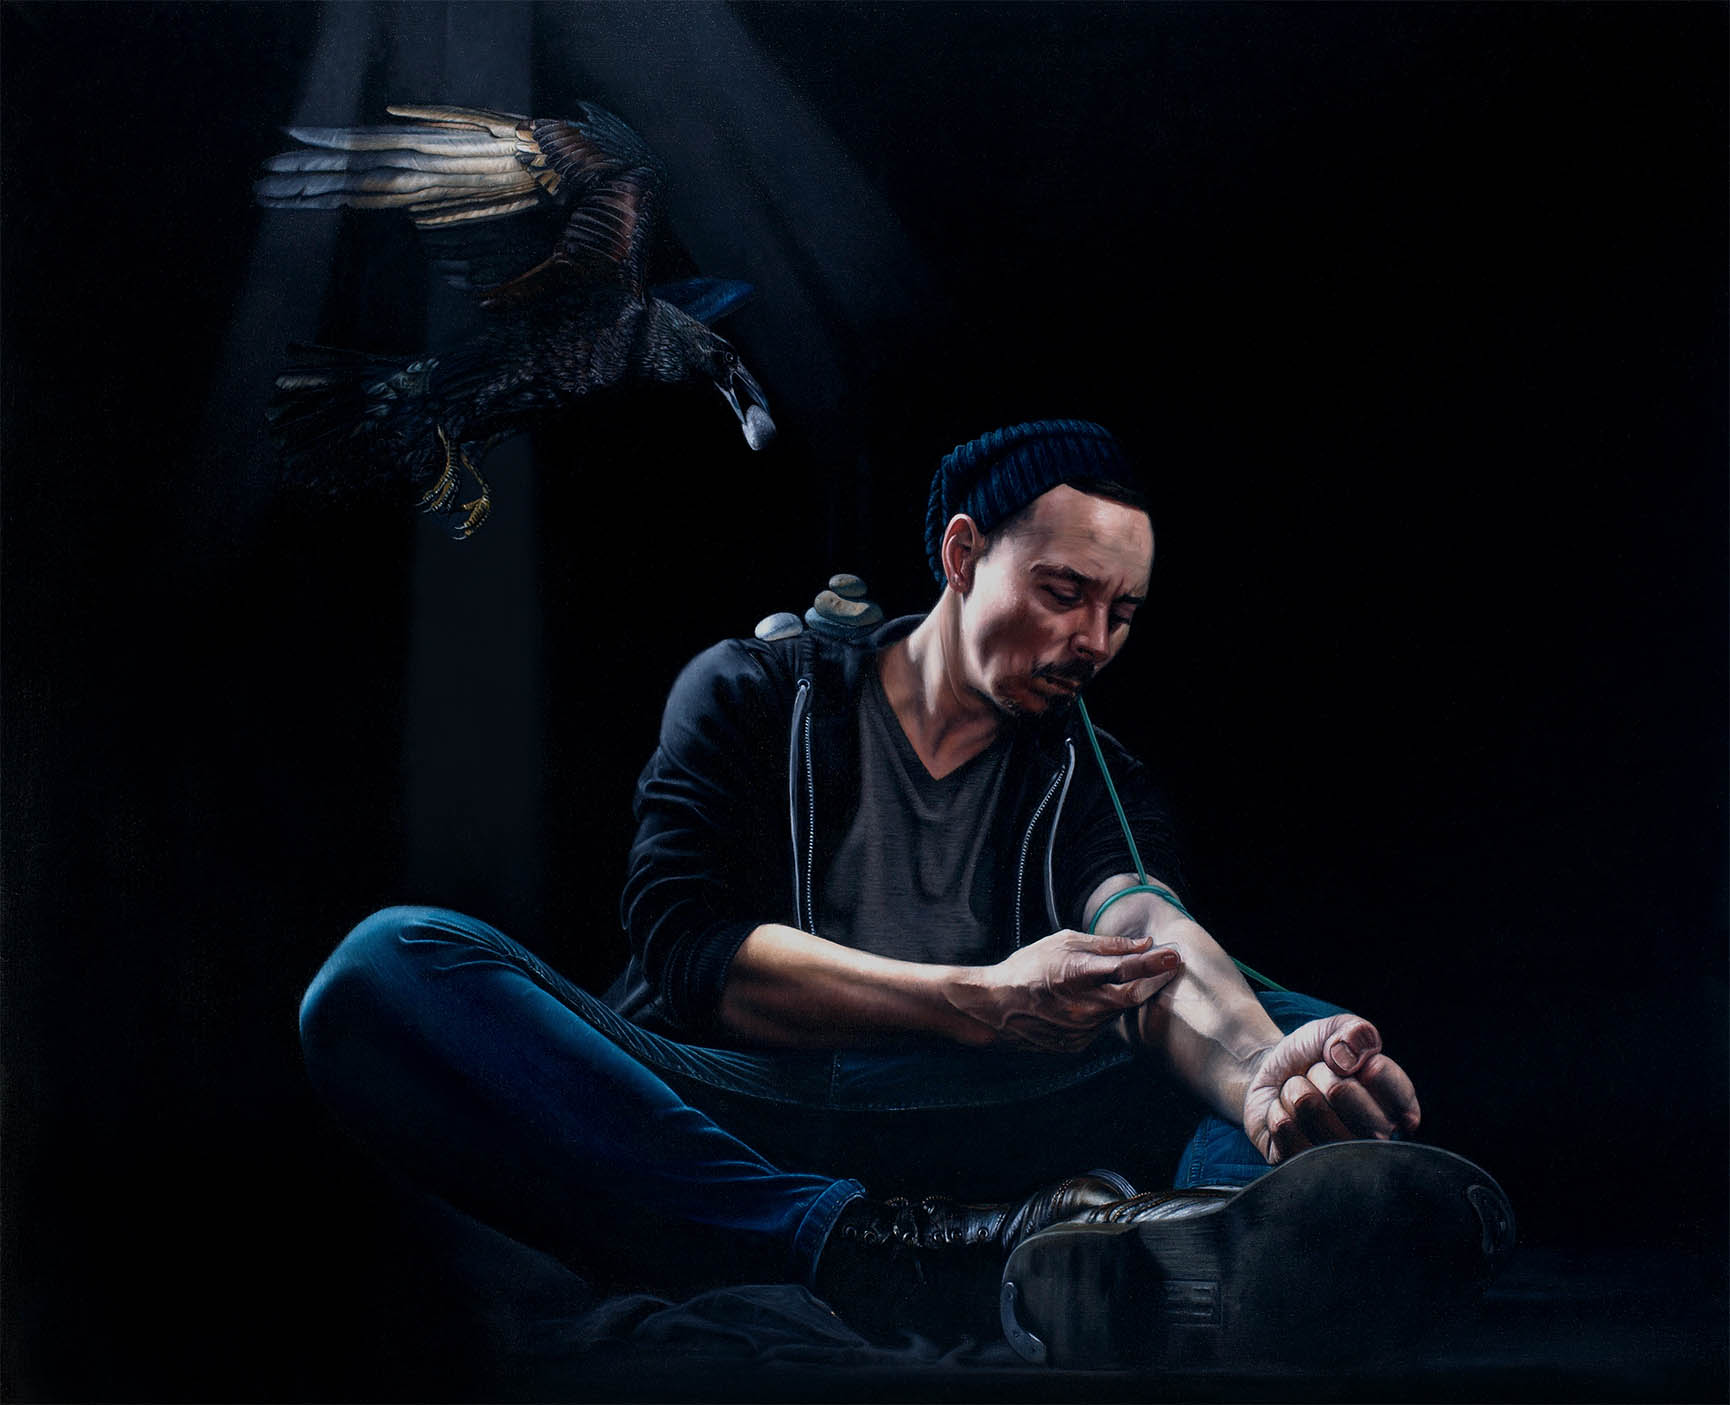 Russ Ritell, The Burial, Oil on Canvas